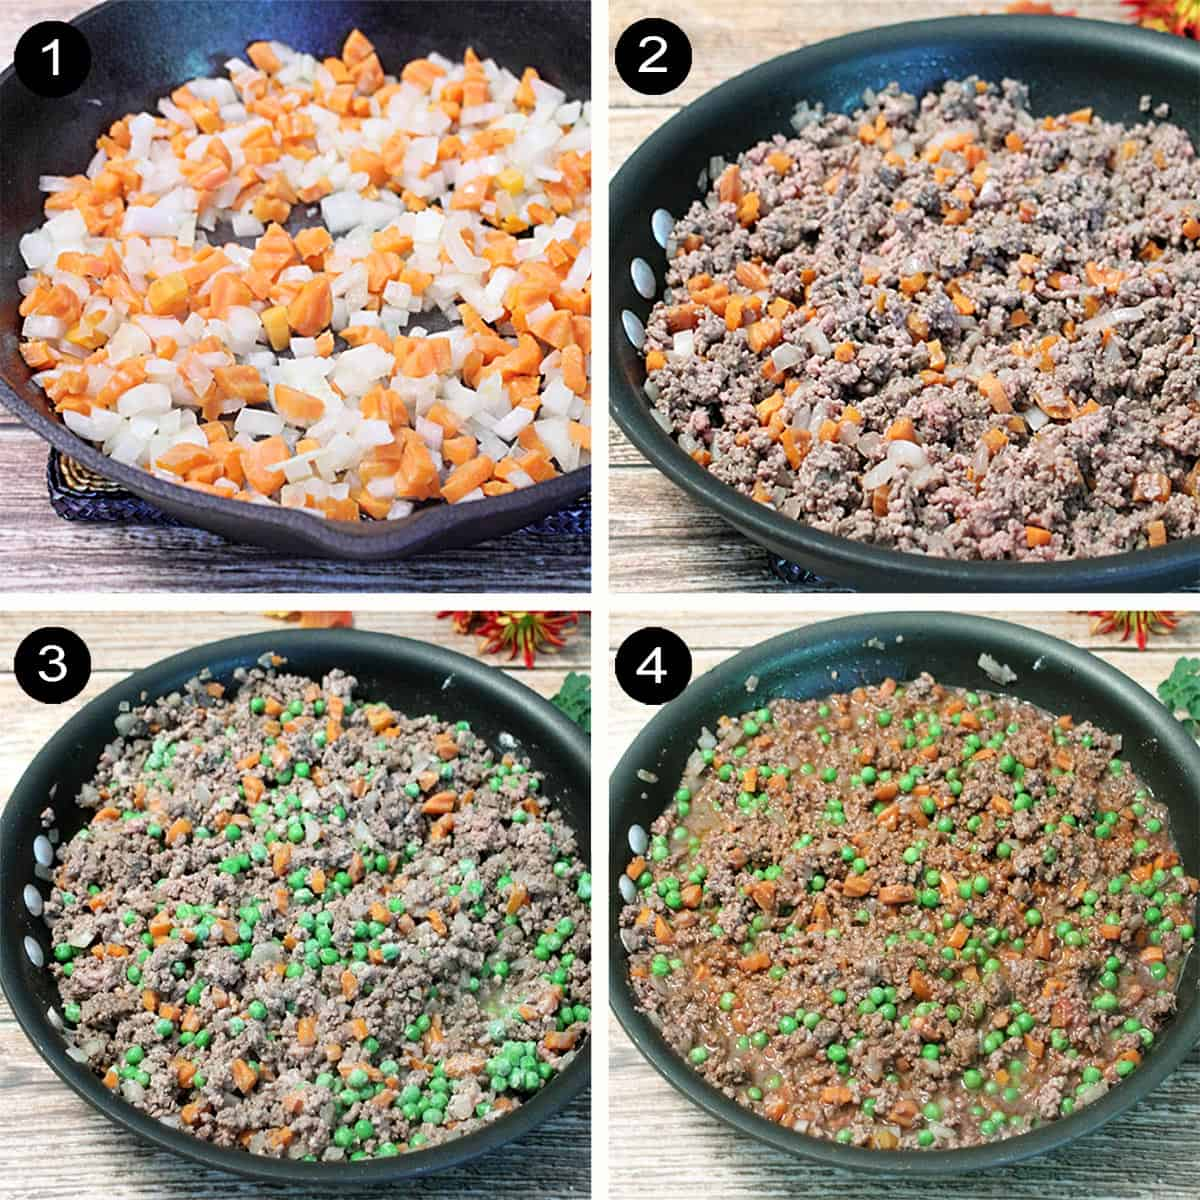 Prep steps to make beef vegetable mixture.